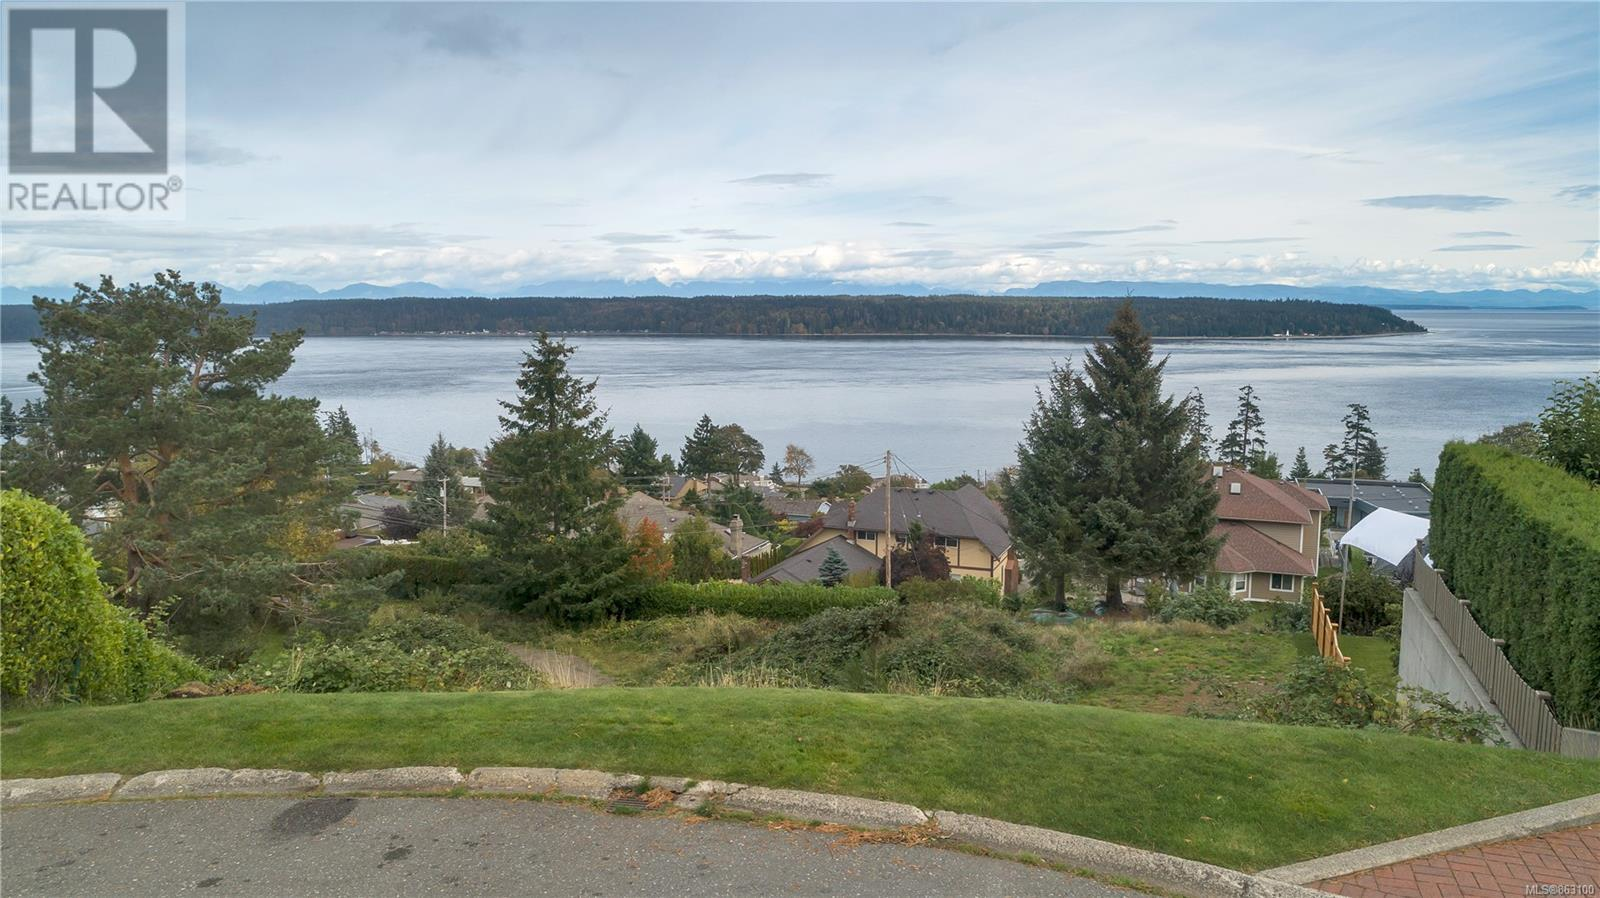 421 Eagle Ridge Rd, campbell river, British Columbia